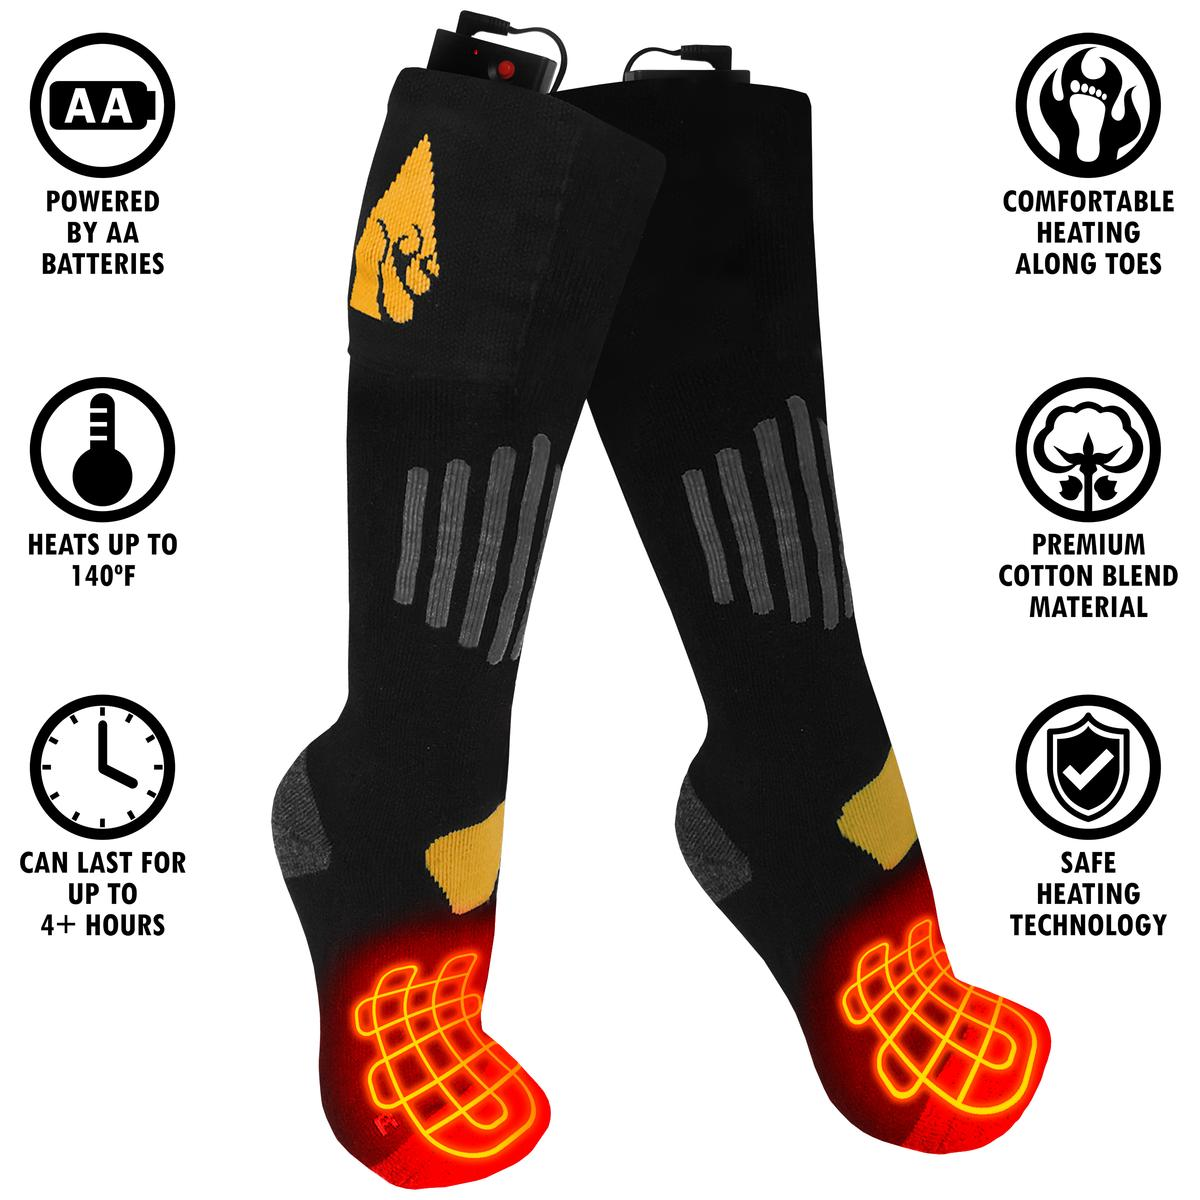 ActionHeat AA Battery Heated Socks - Cotton - Info